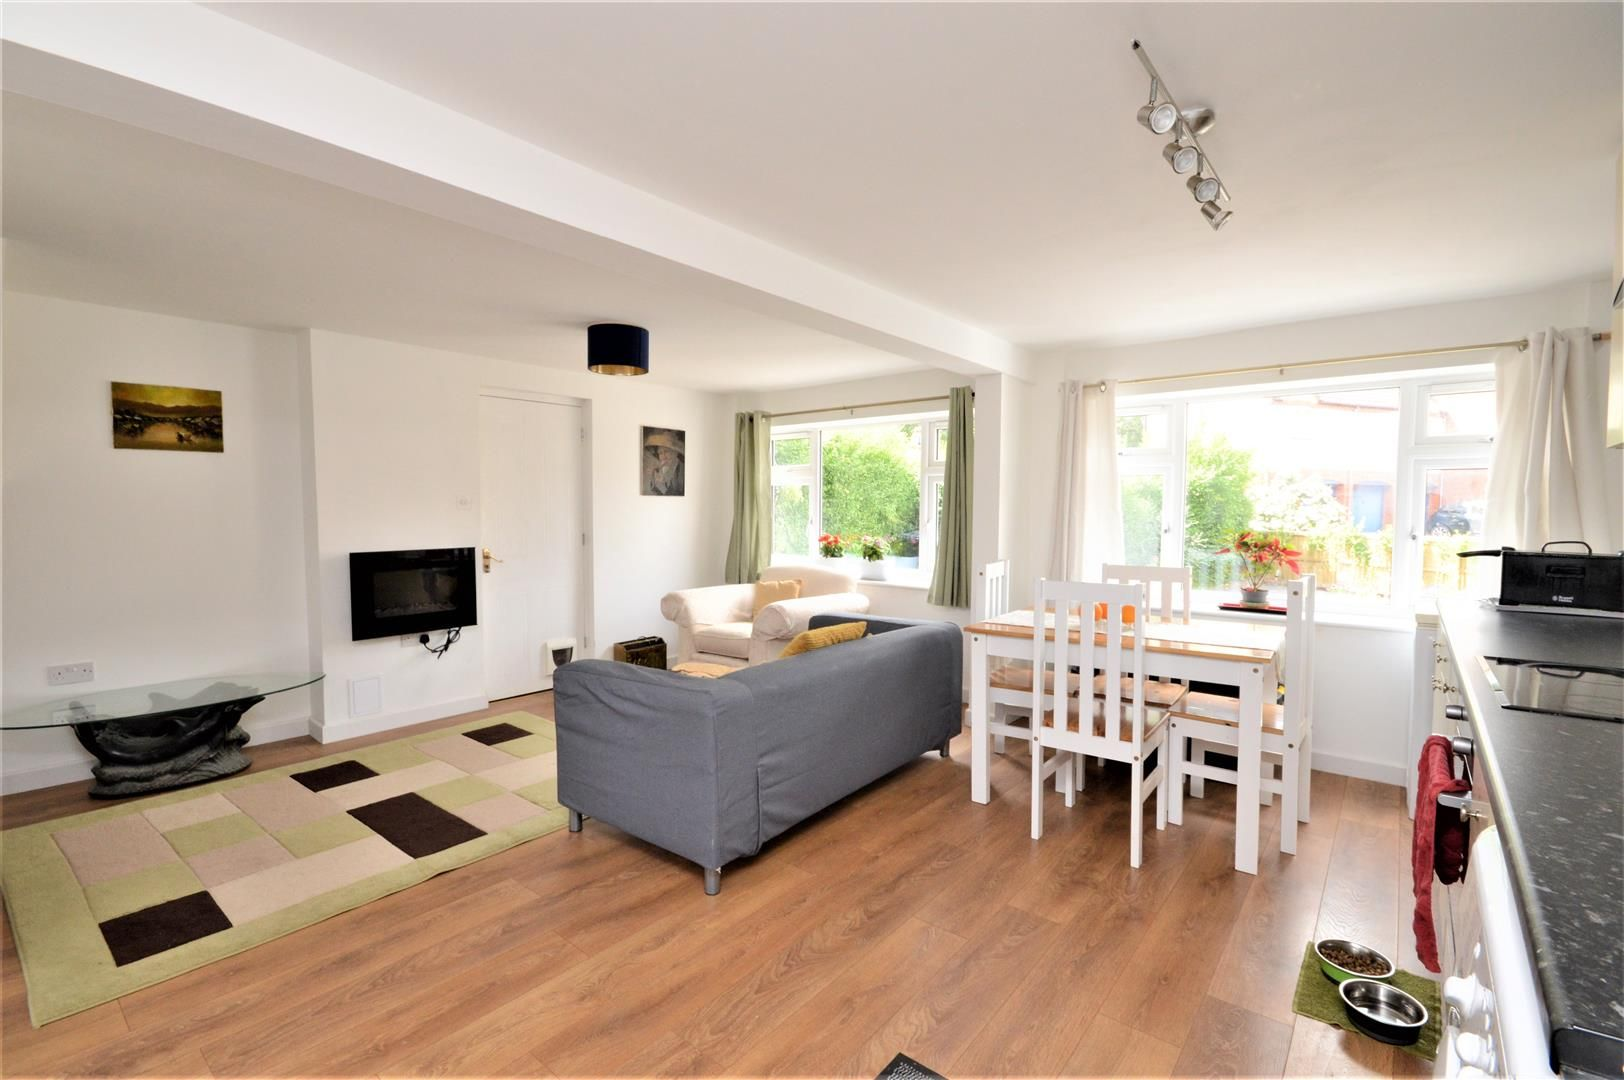 3 bed detached for sale in Belmont 4